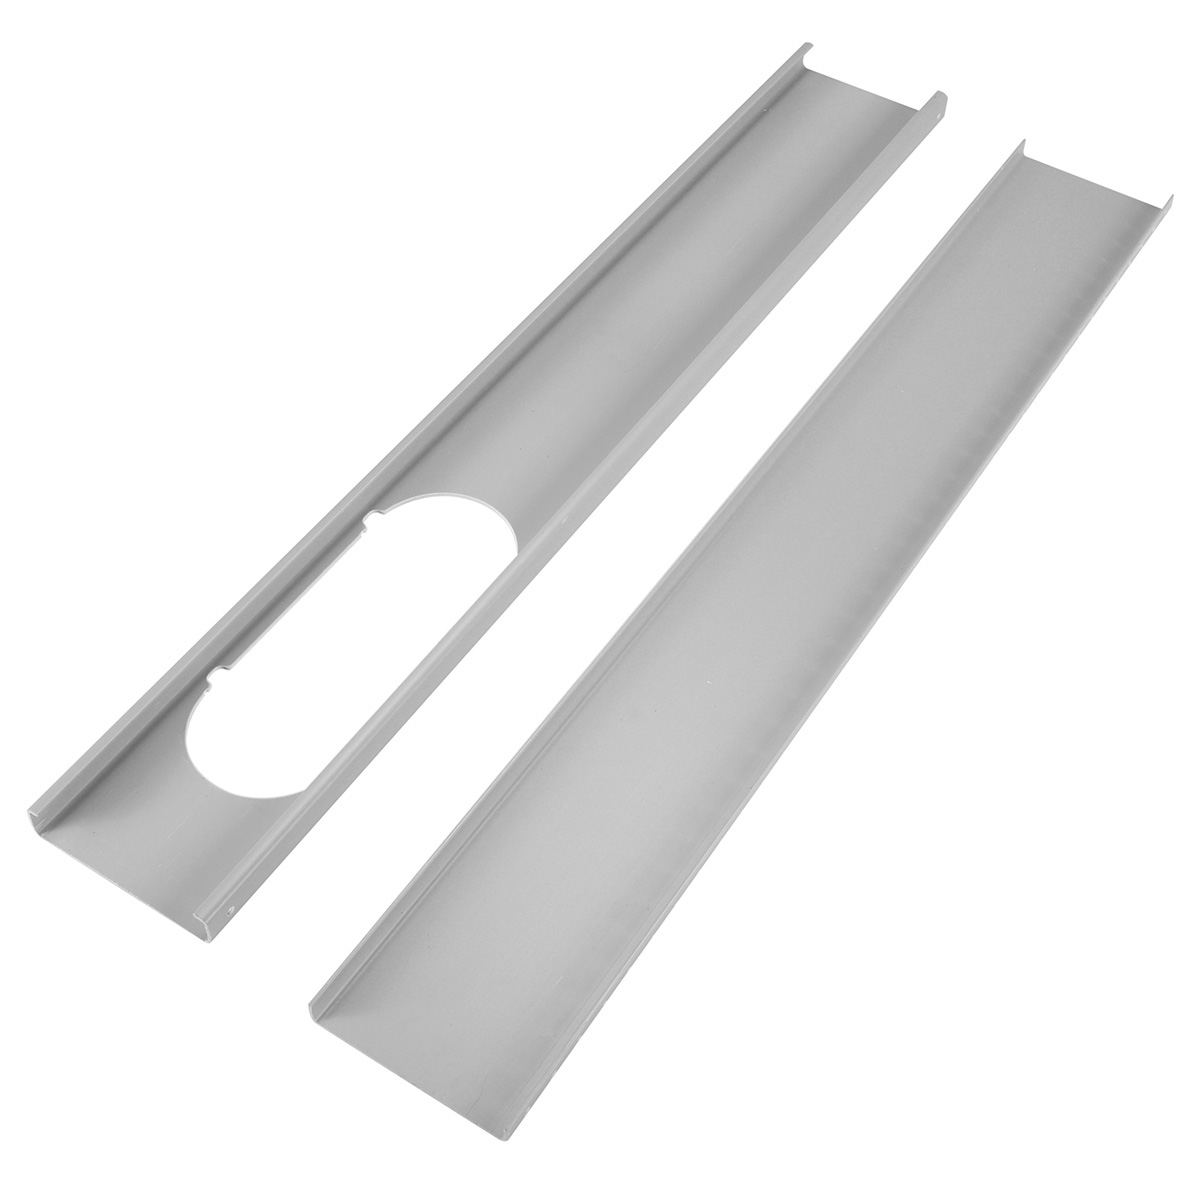 2x Adjustable Window Slide Kit Plate Spare Parts For Portable Air Conditioner air conditioner spare parts plastic mould for home appliance